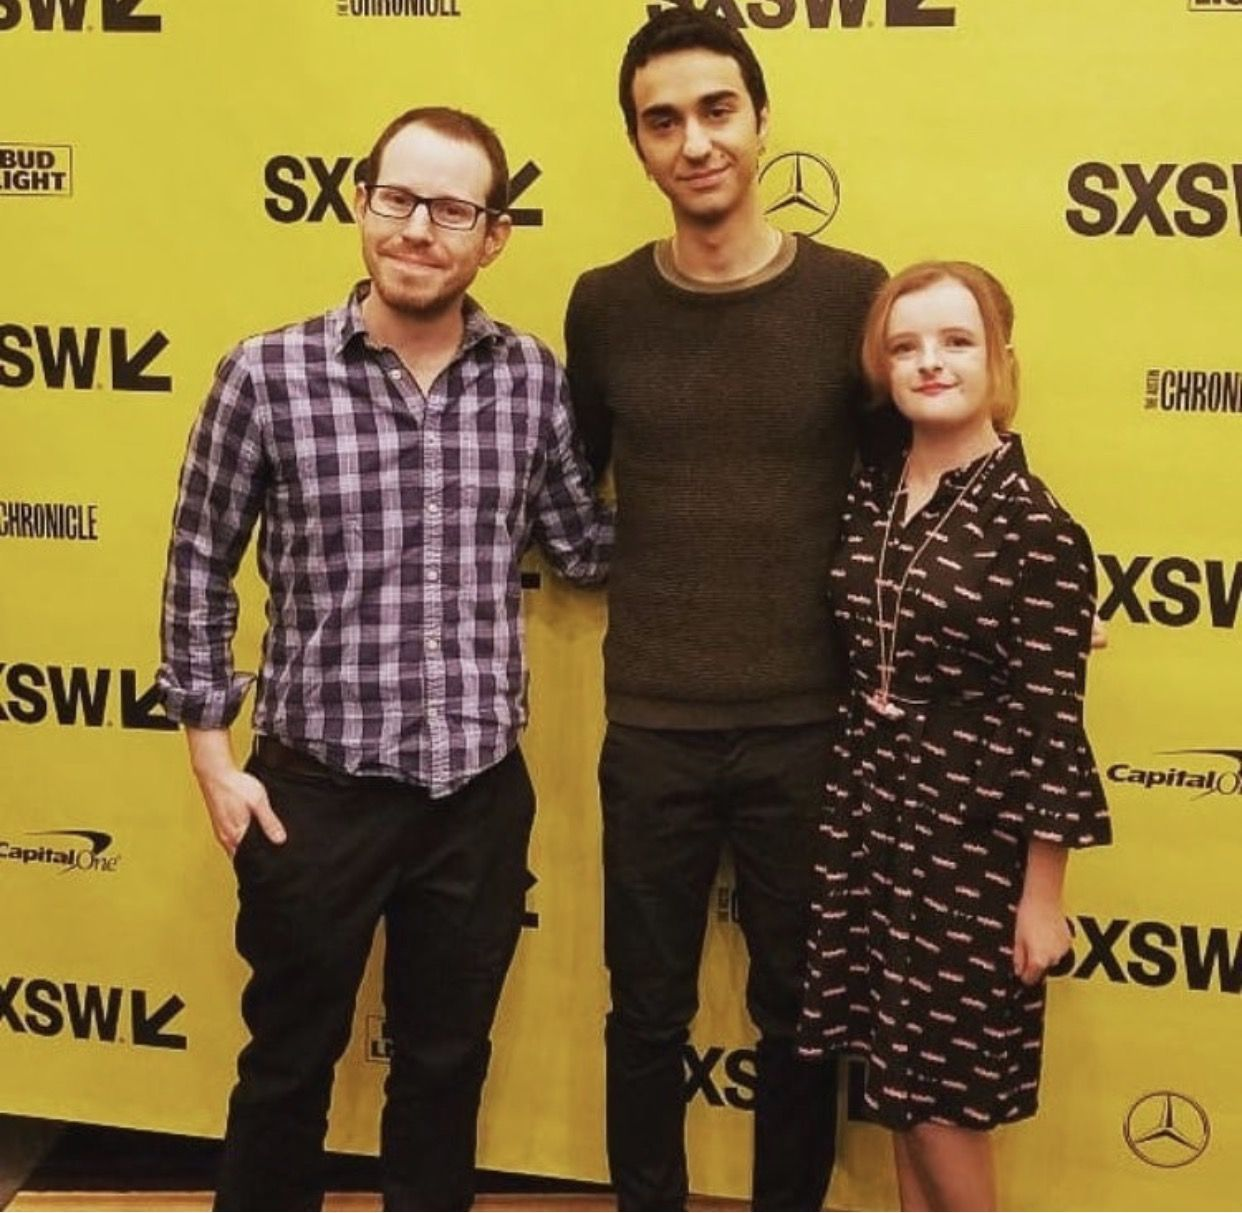 Ari Aster Alex Wolff And Milly Shapiro At SXSW For Hereditary